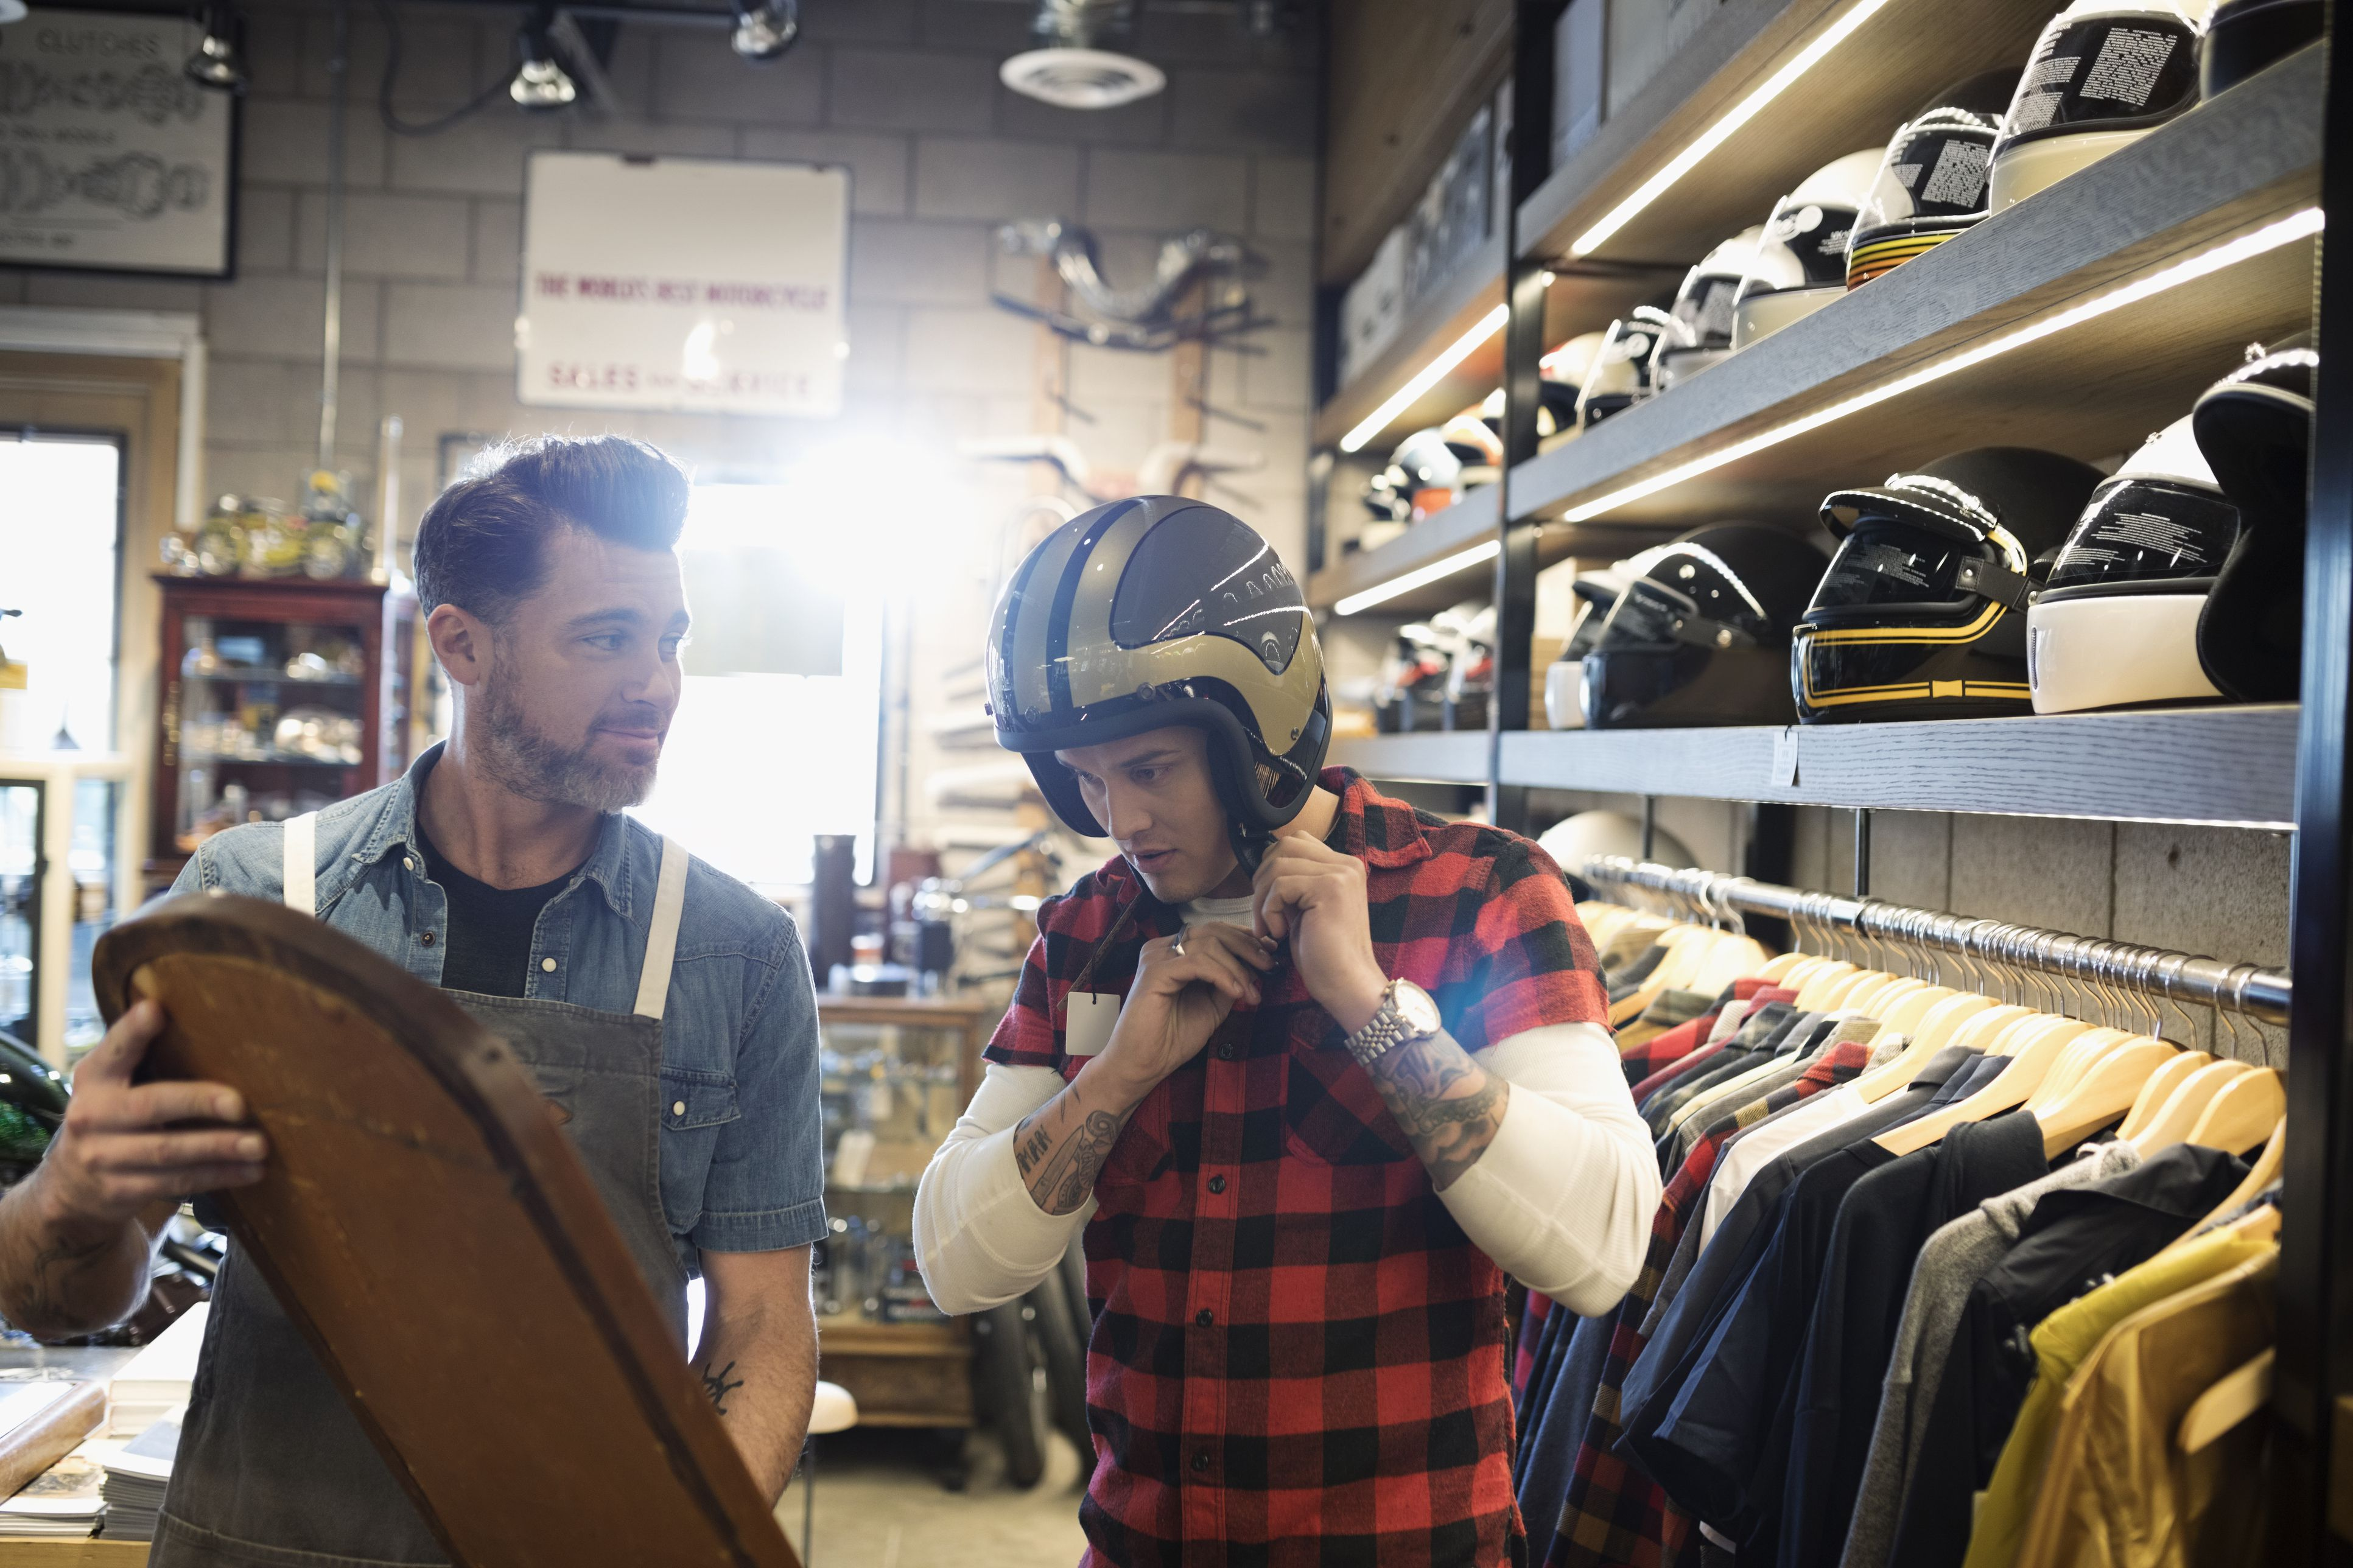 Motorcycle shop owner holding mirror for customer trying on helmet